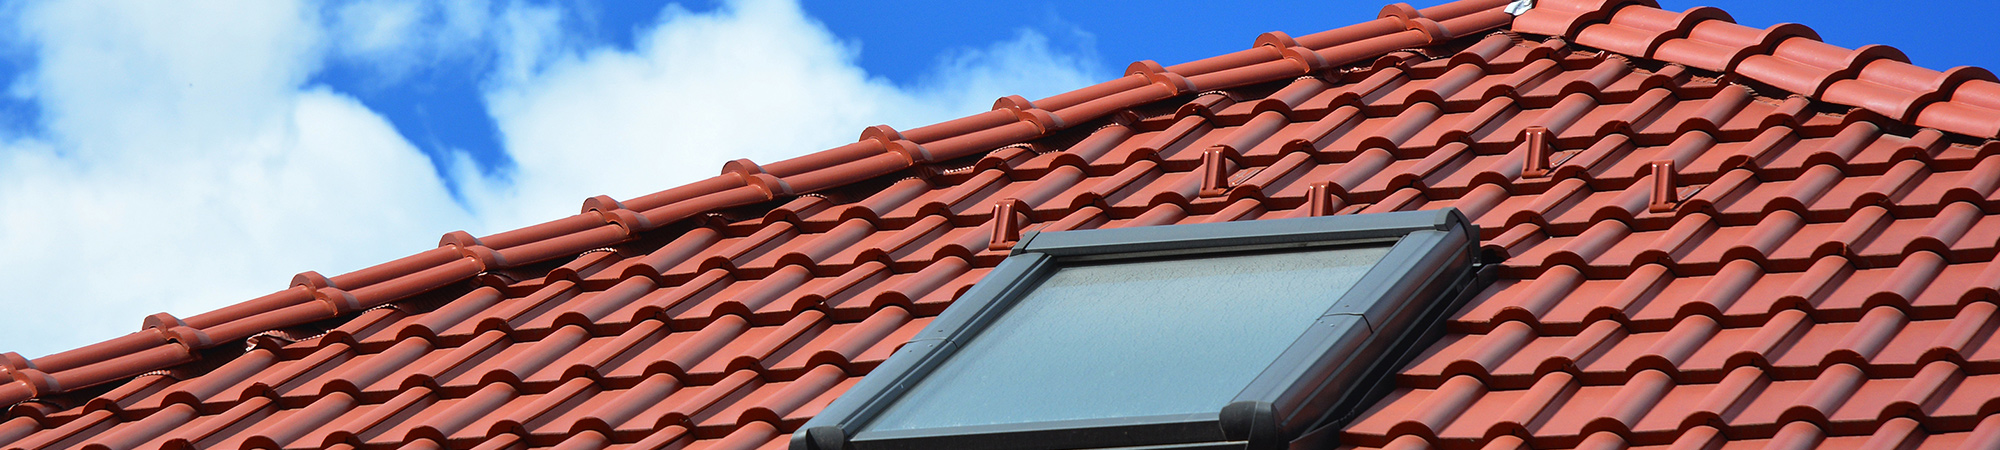 Roof Tile Laying